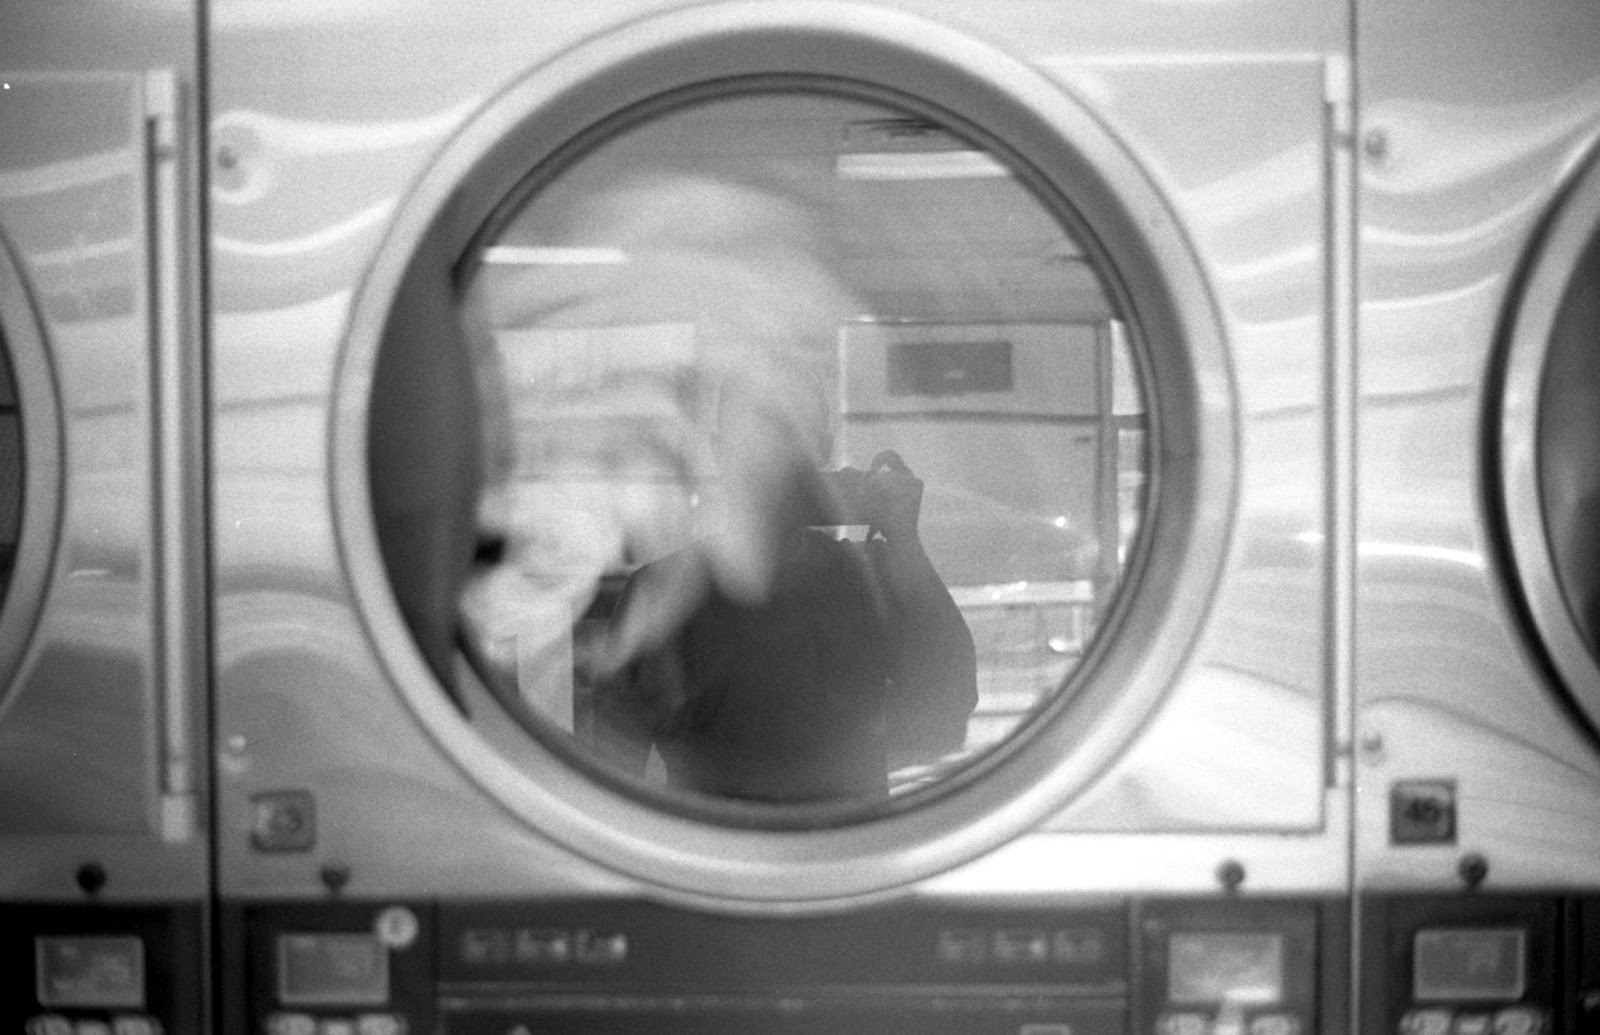 Laundromat self portrait in front of spinning laundry